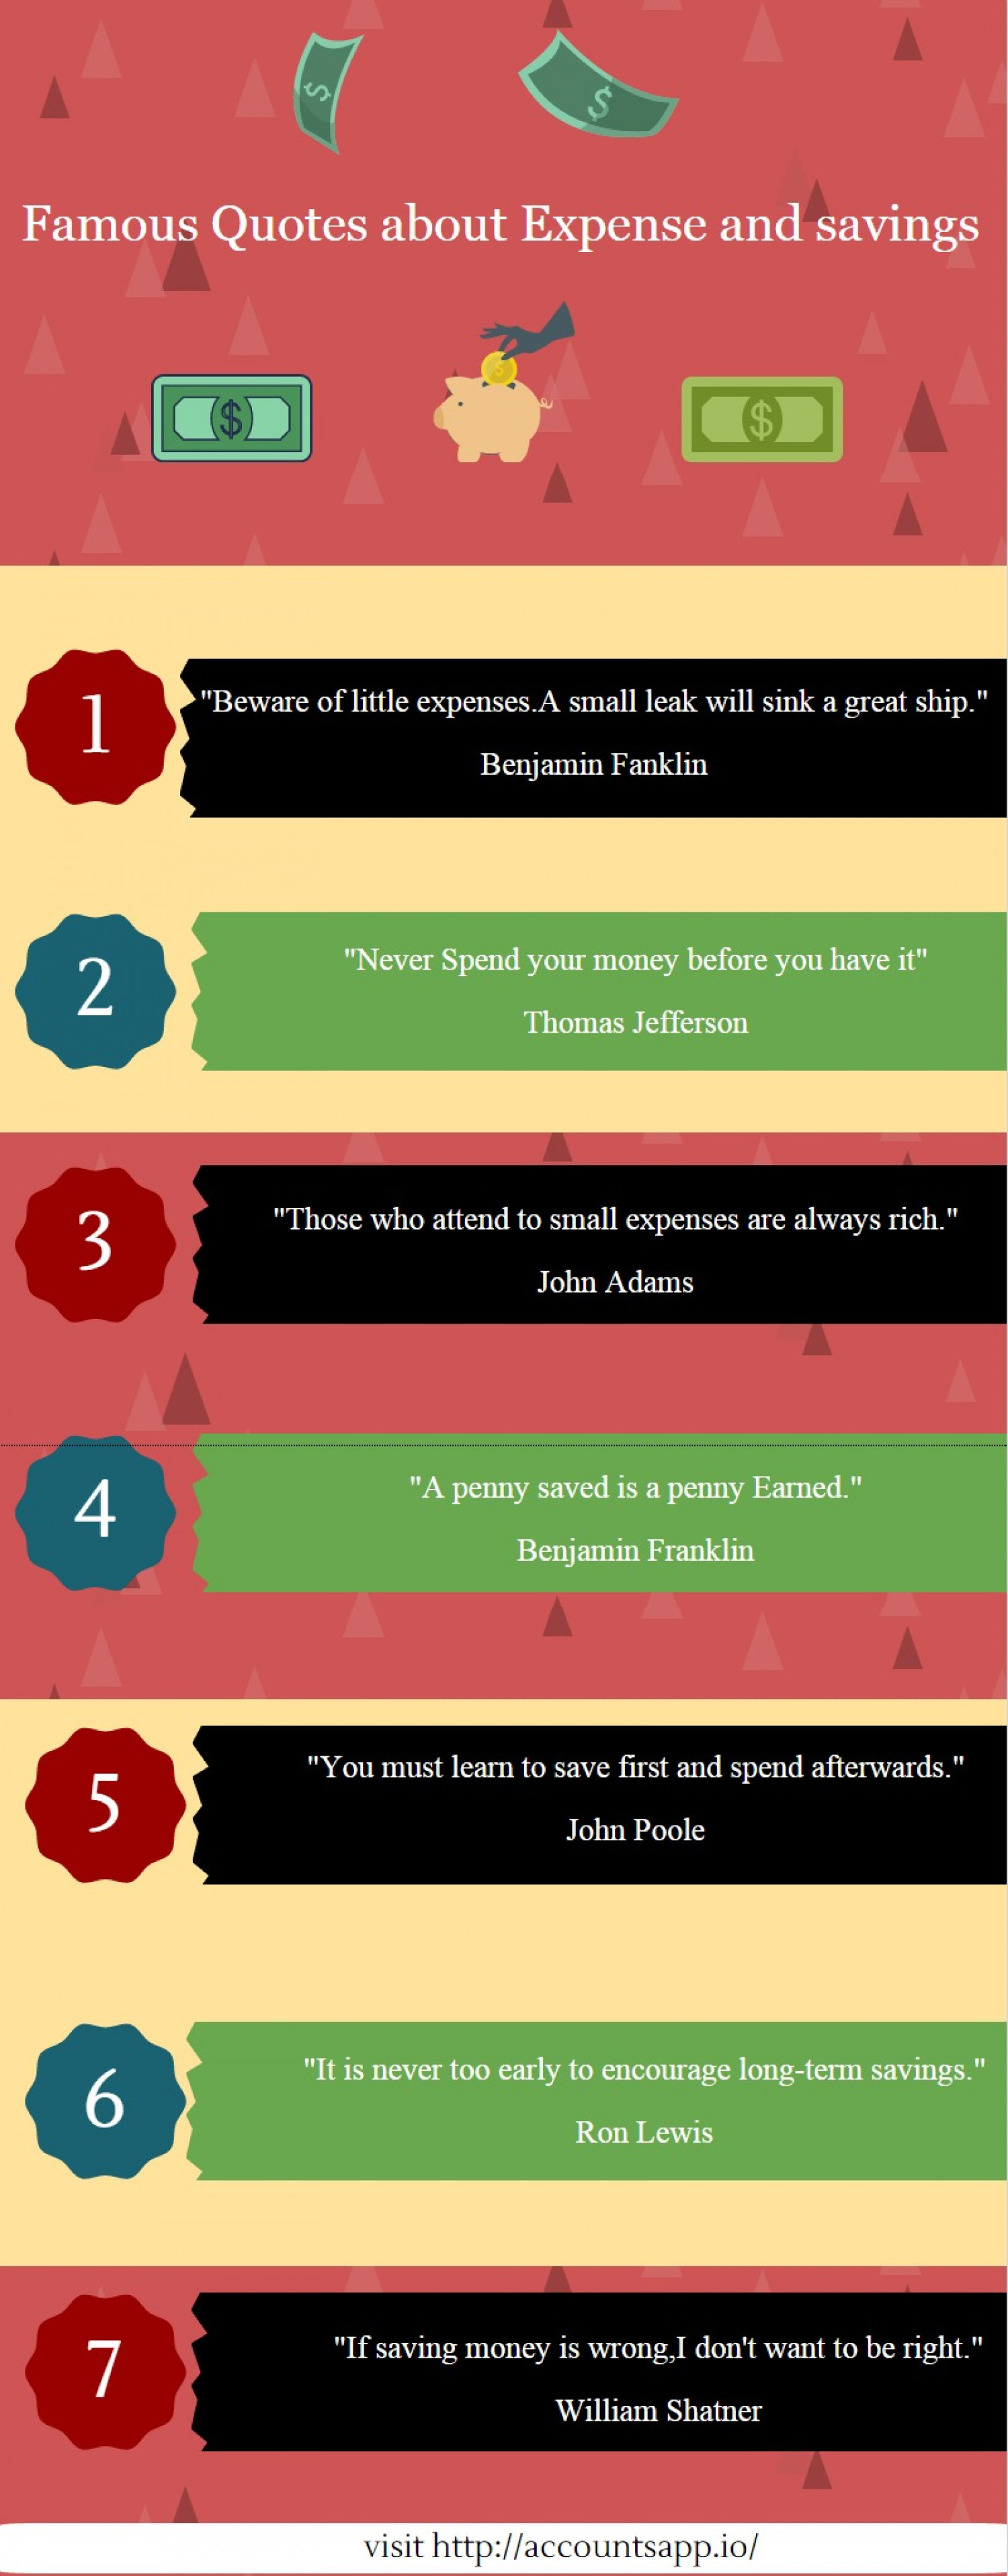 Famous Quotes About Expenses And Savings Visually